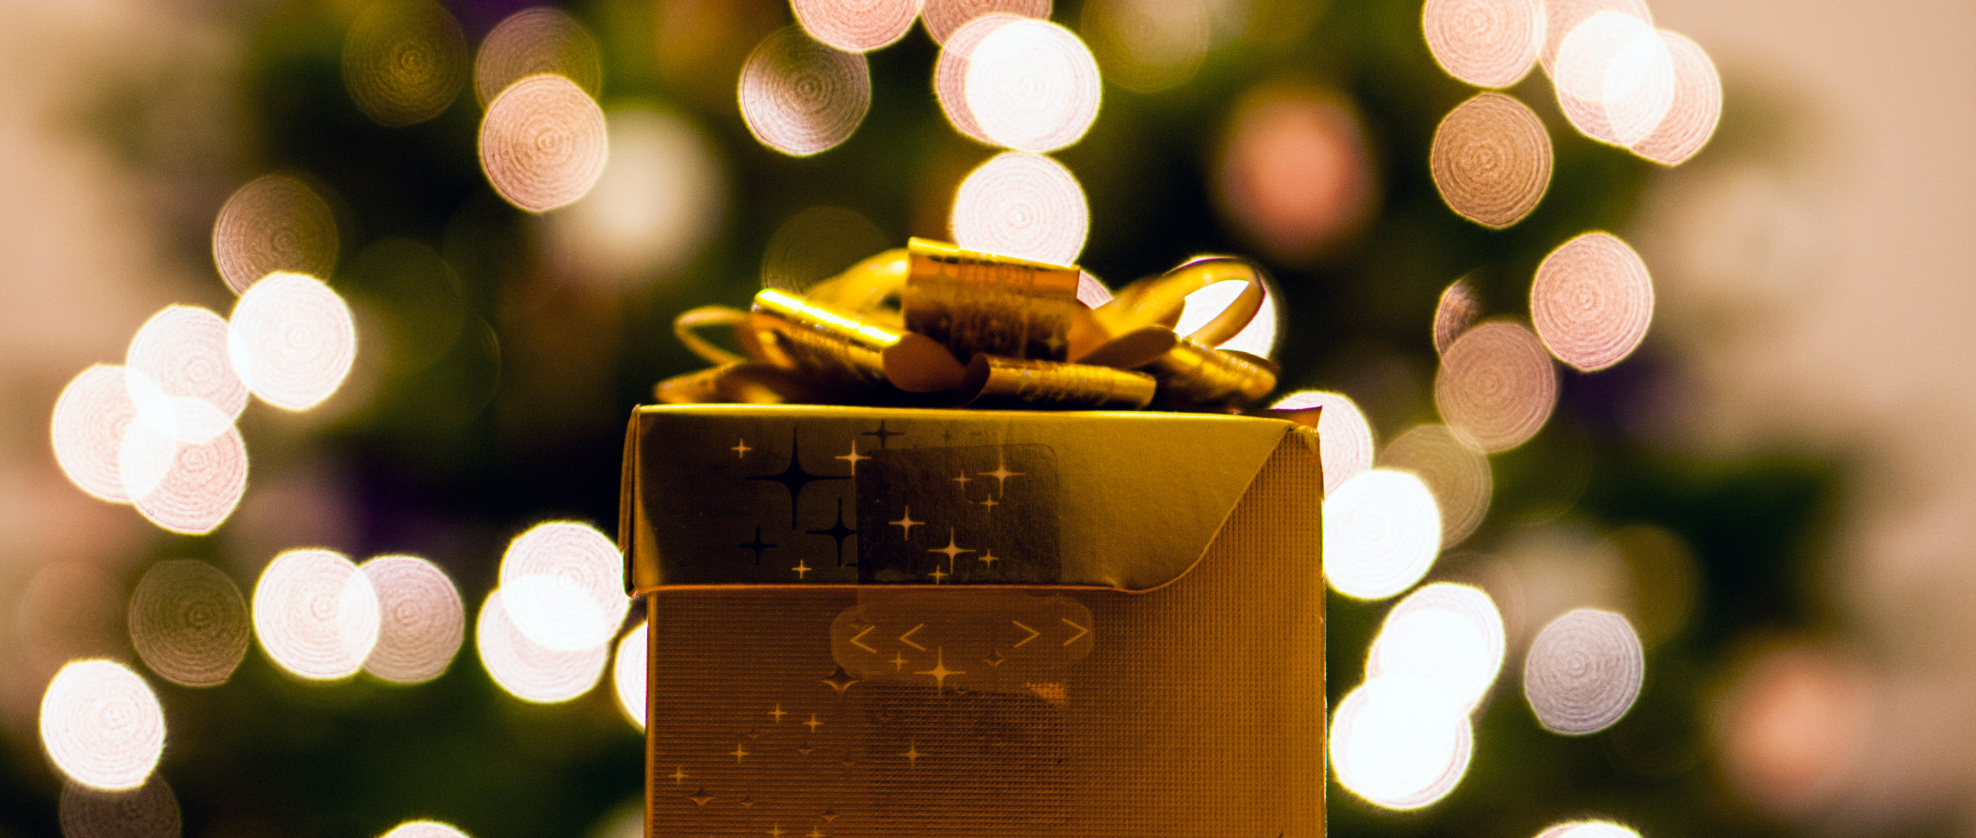 Gift Guide: Luxury Christmas Gifts for Her